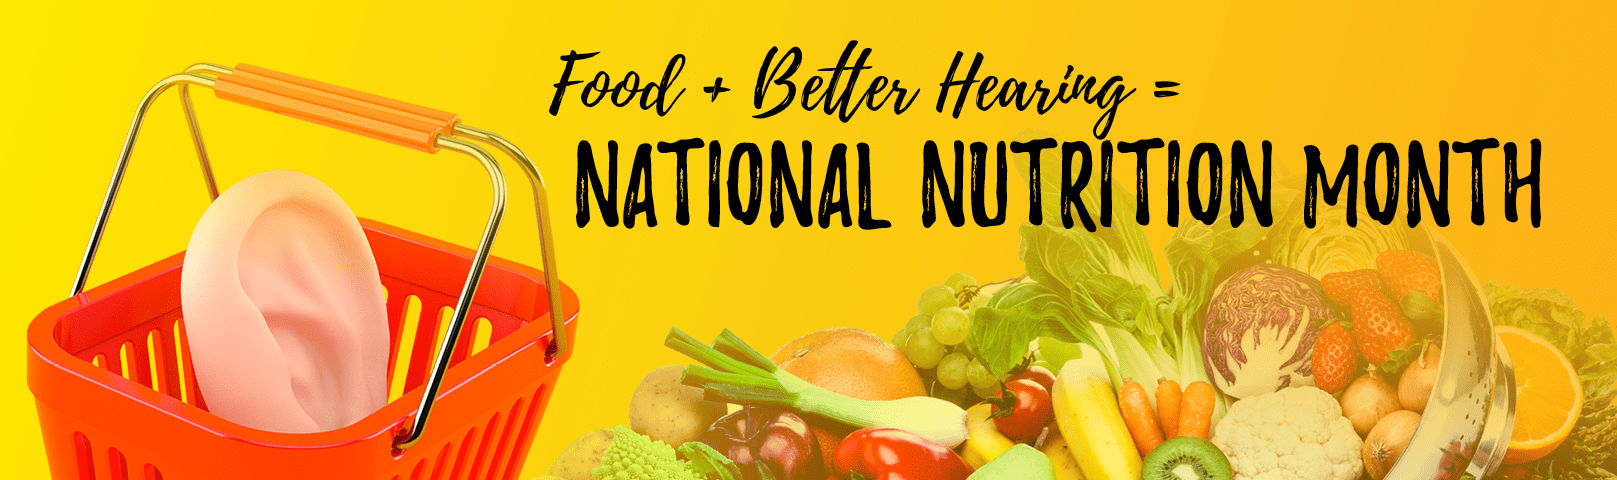 Food + Better Hearing = National Nutrition Month!